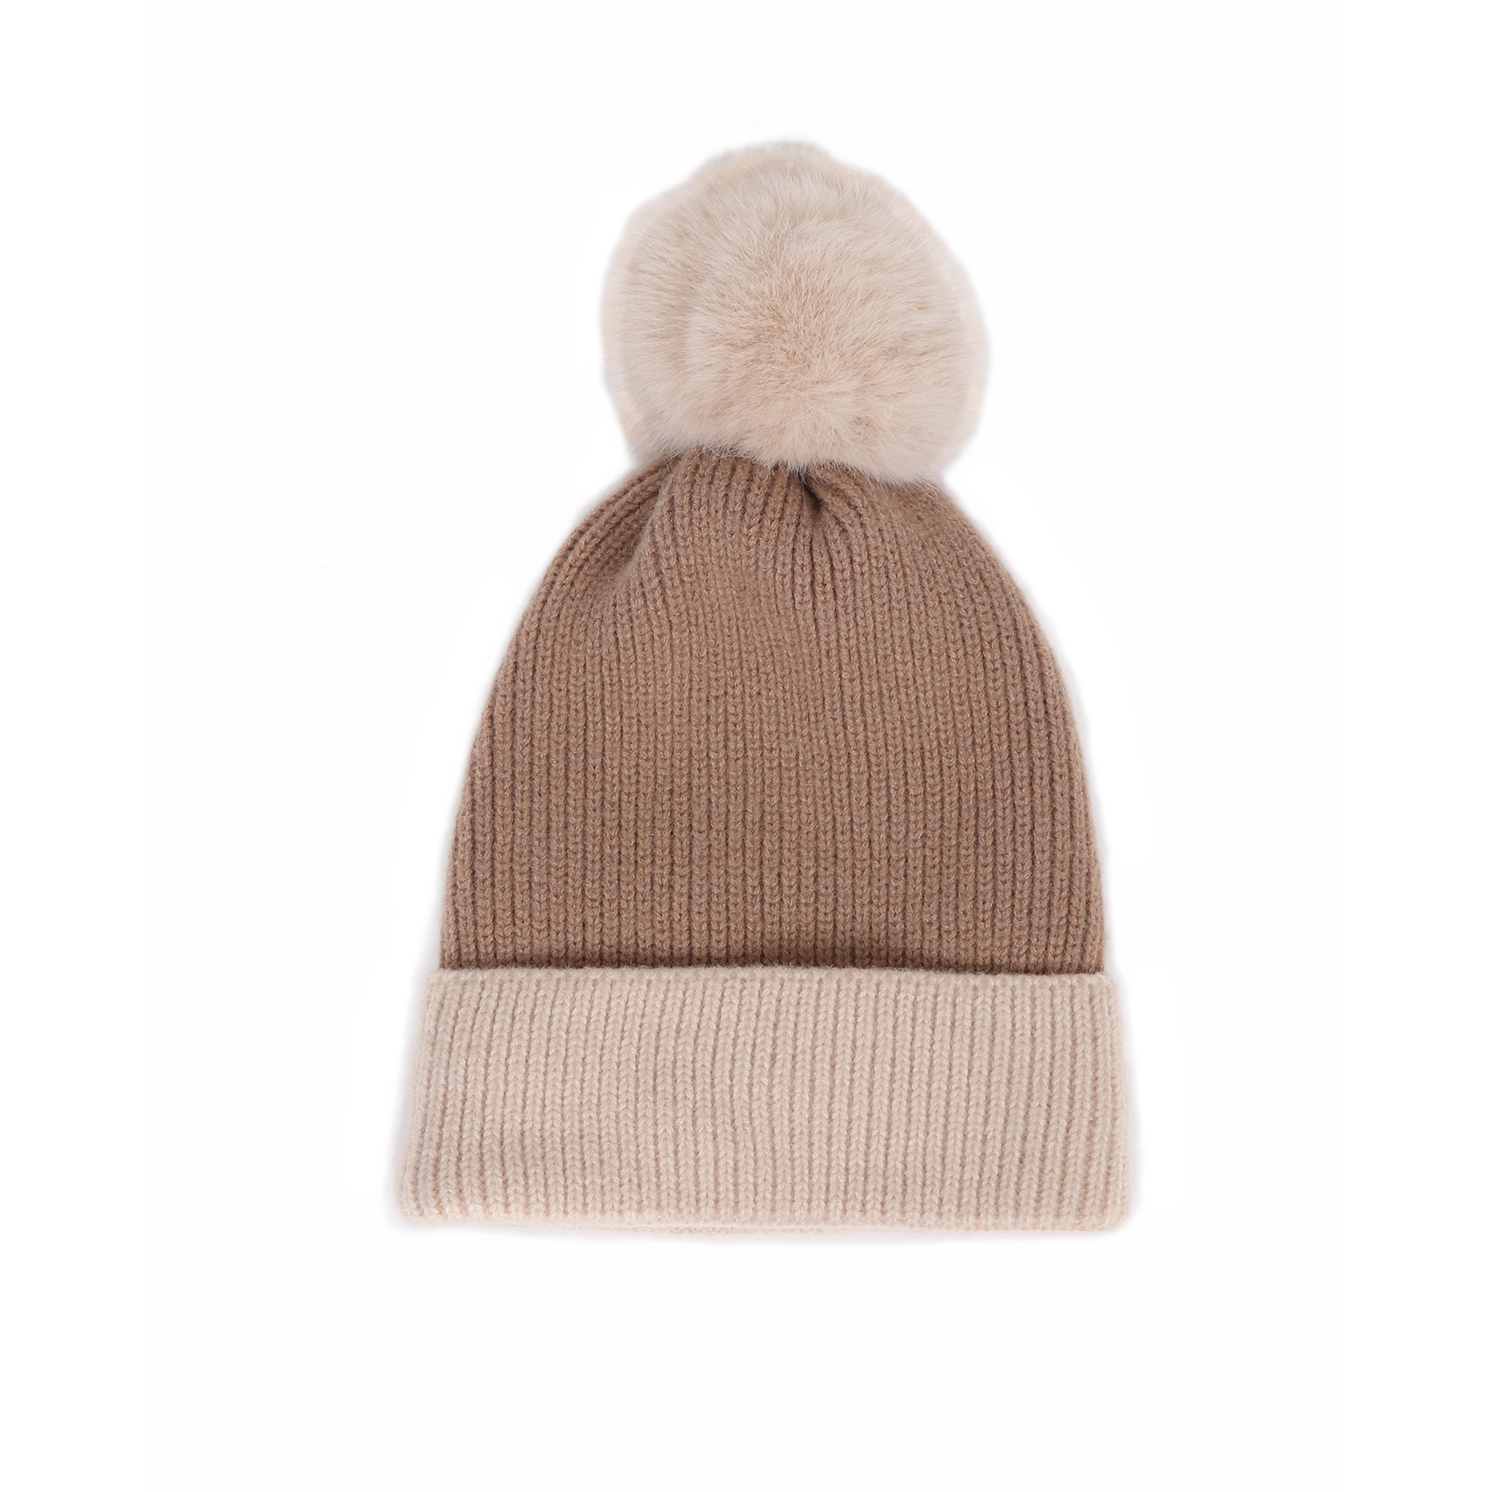 Powder – Bonnie Stone/Cream Pom Pom Hat with Powder Presentation Gift Bag